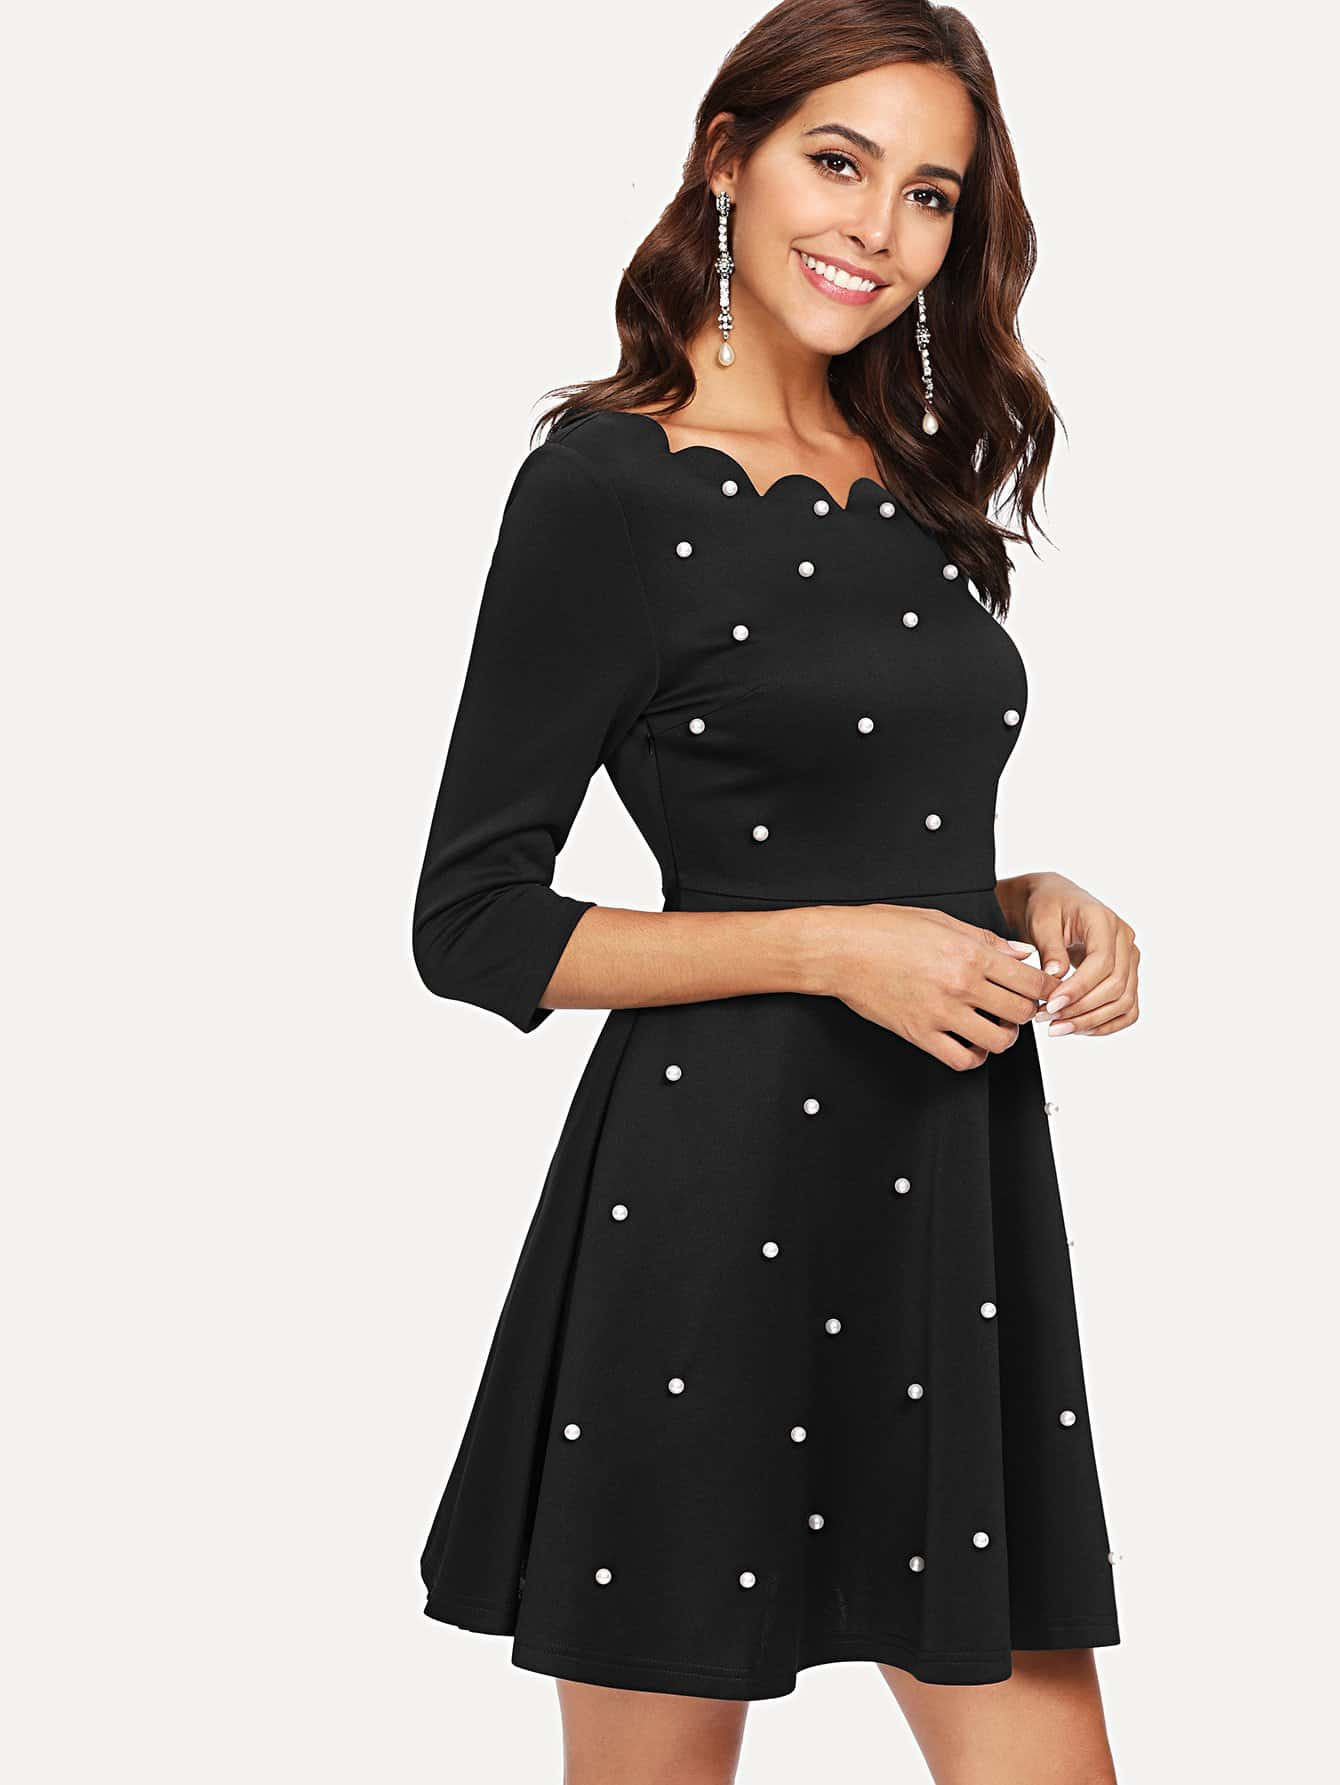 Pearl Detail Scallop Trim Fit & Flare Dress scallop detail bell sleeve dress